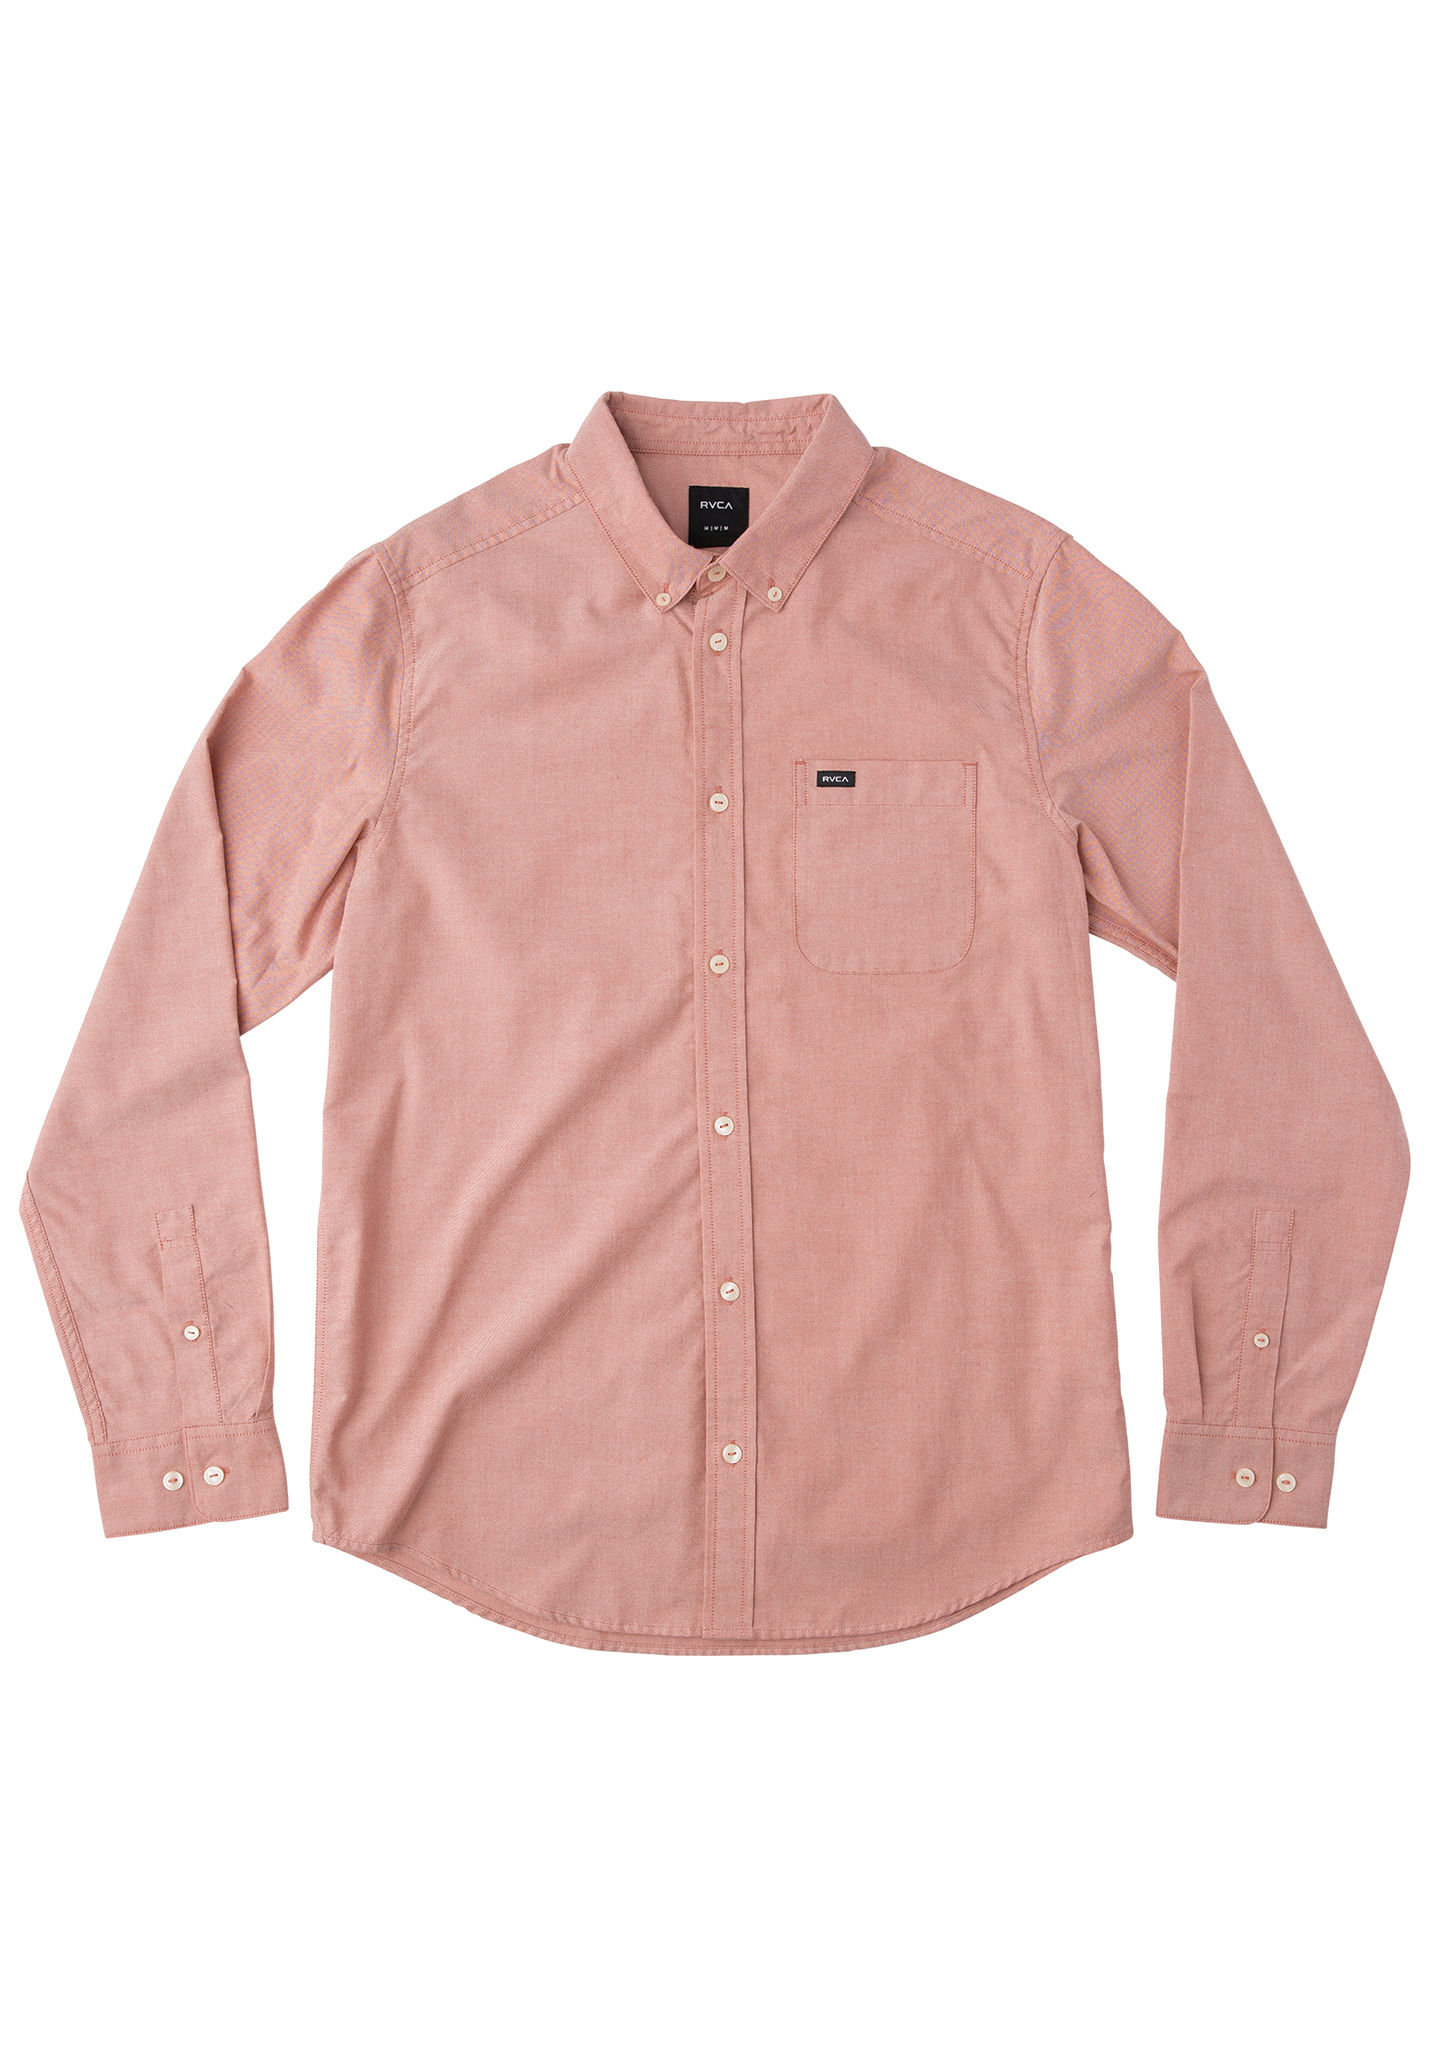 That\'ll Do Oxford L/S Camisa para Hombres Blanco RVCA b4n5QlG ...